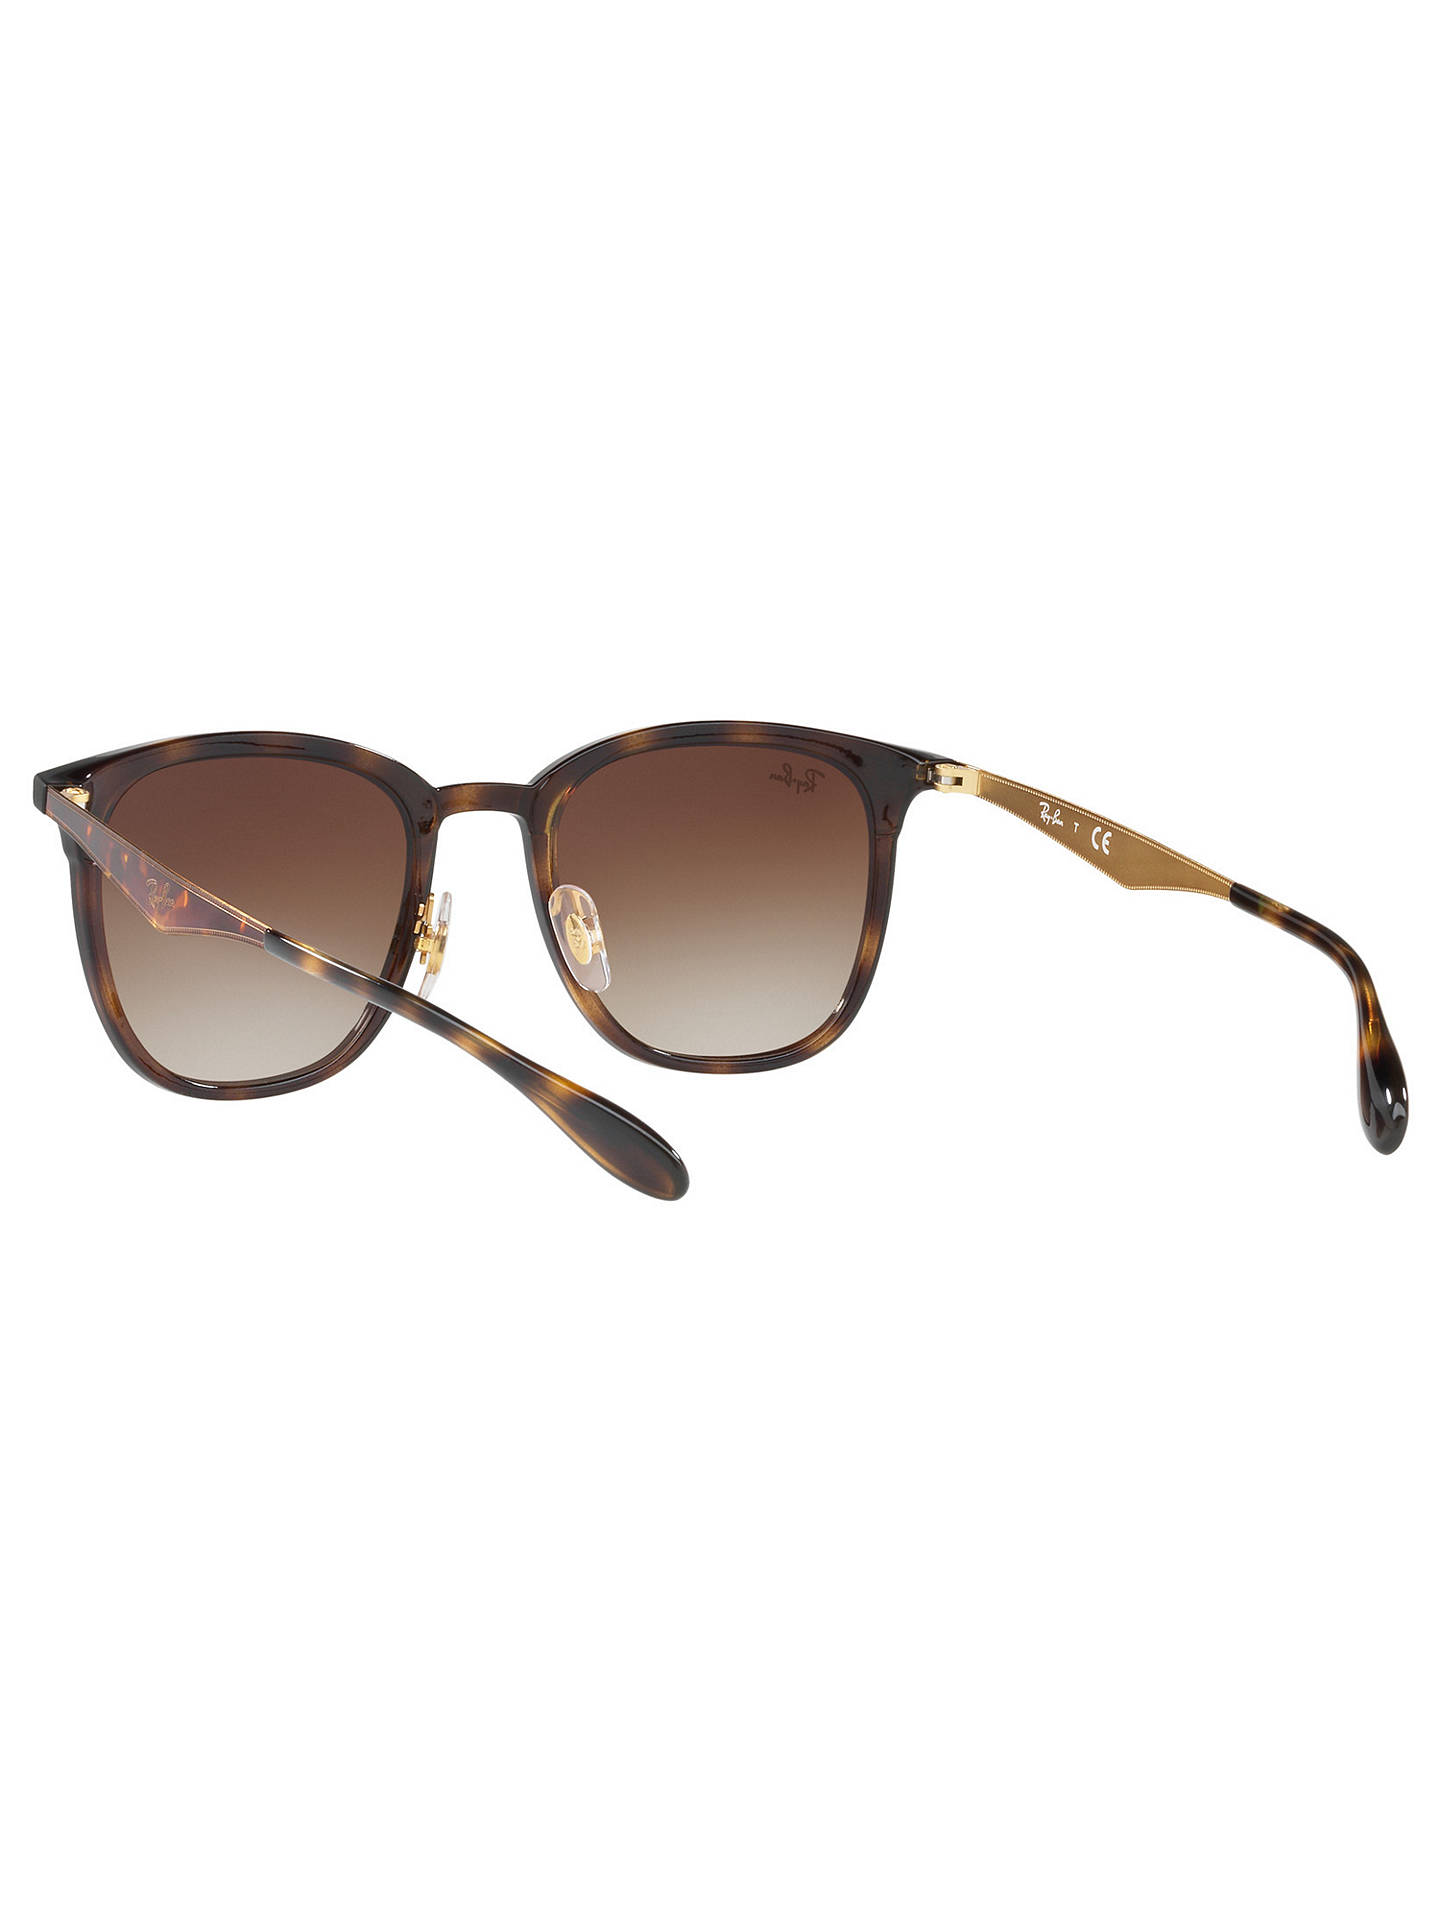 ff202809250 Ray-Ban RB4278 Square Sunglasses at John Lewis   Partners